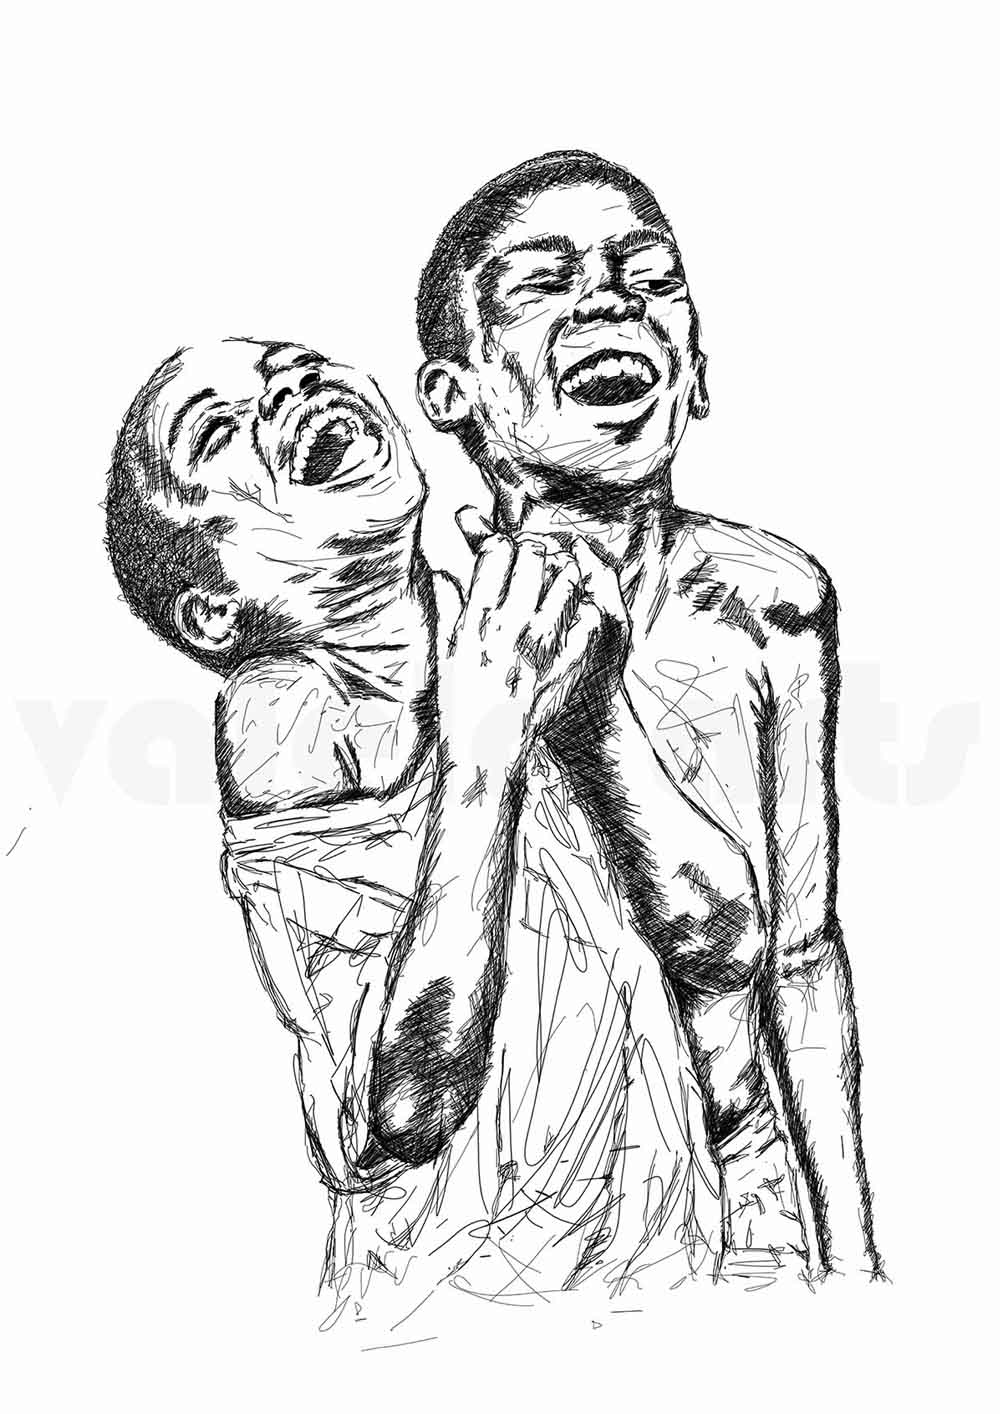 Sandile Valela Busuku Ulonwabo-2 (2 boys) signed 2018 Digital Sketch, edition 2of3 29cm x 42cm